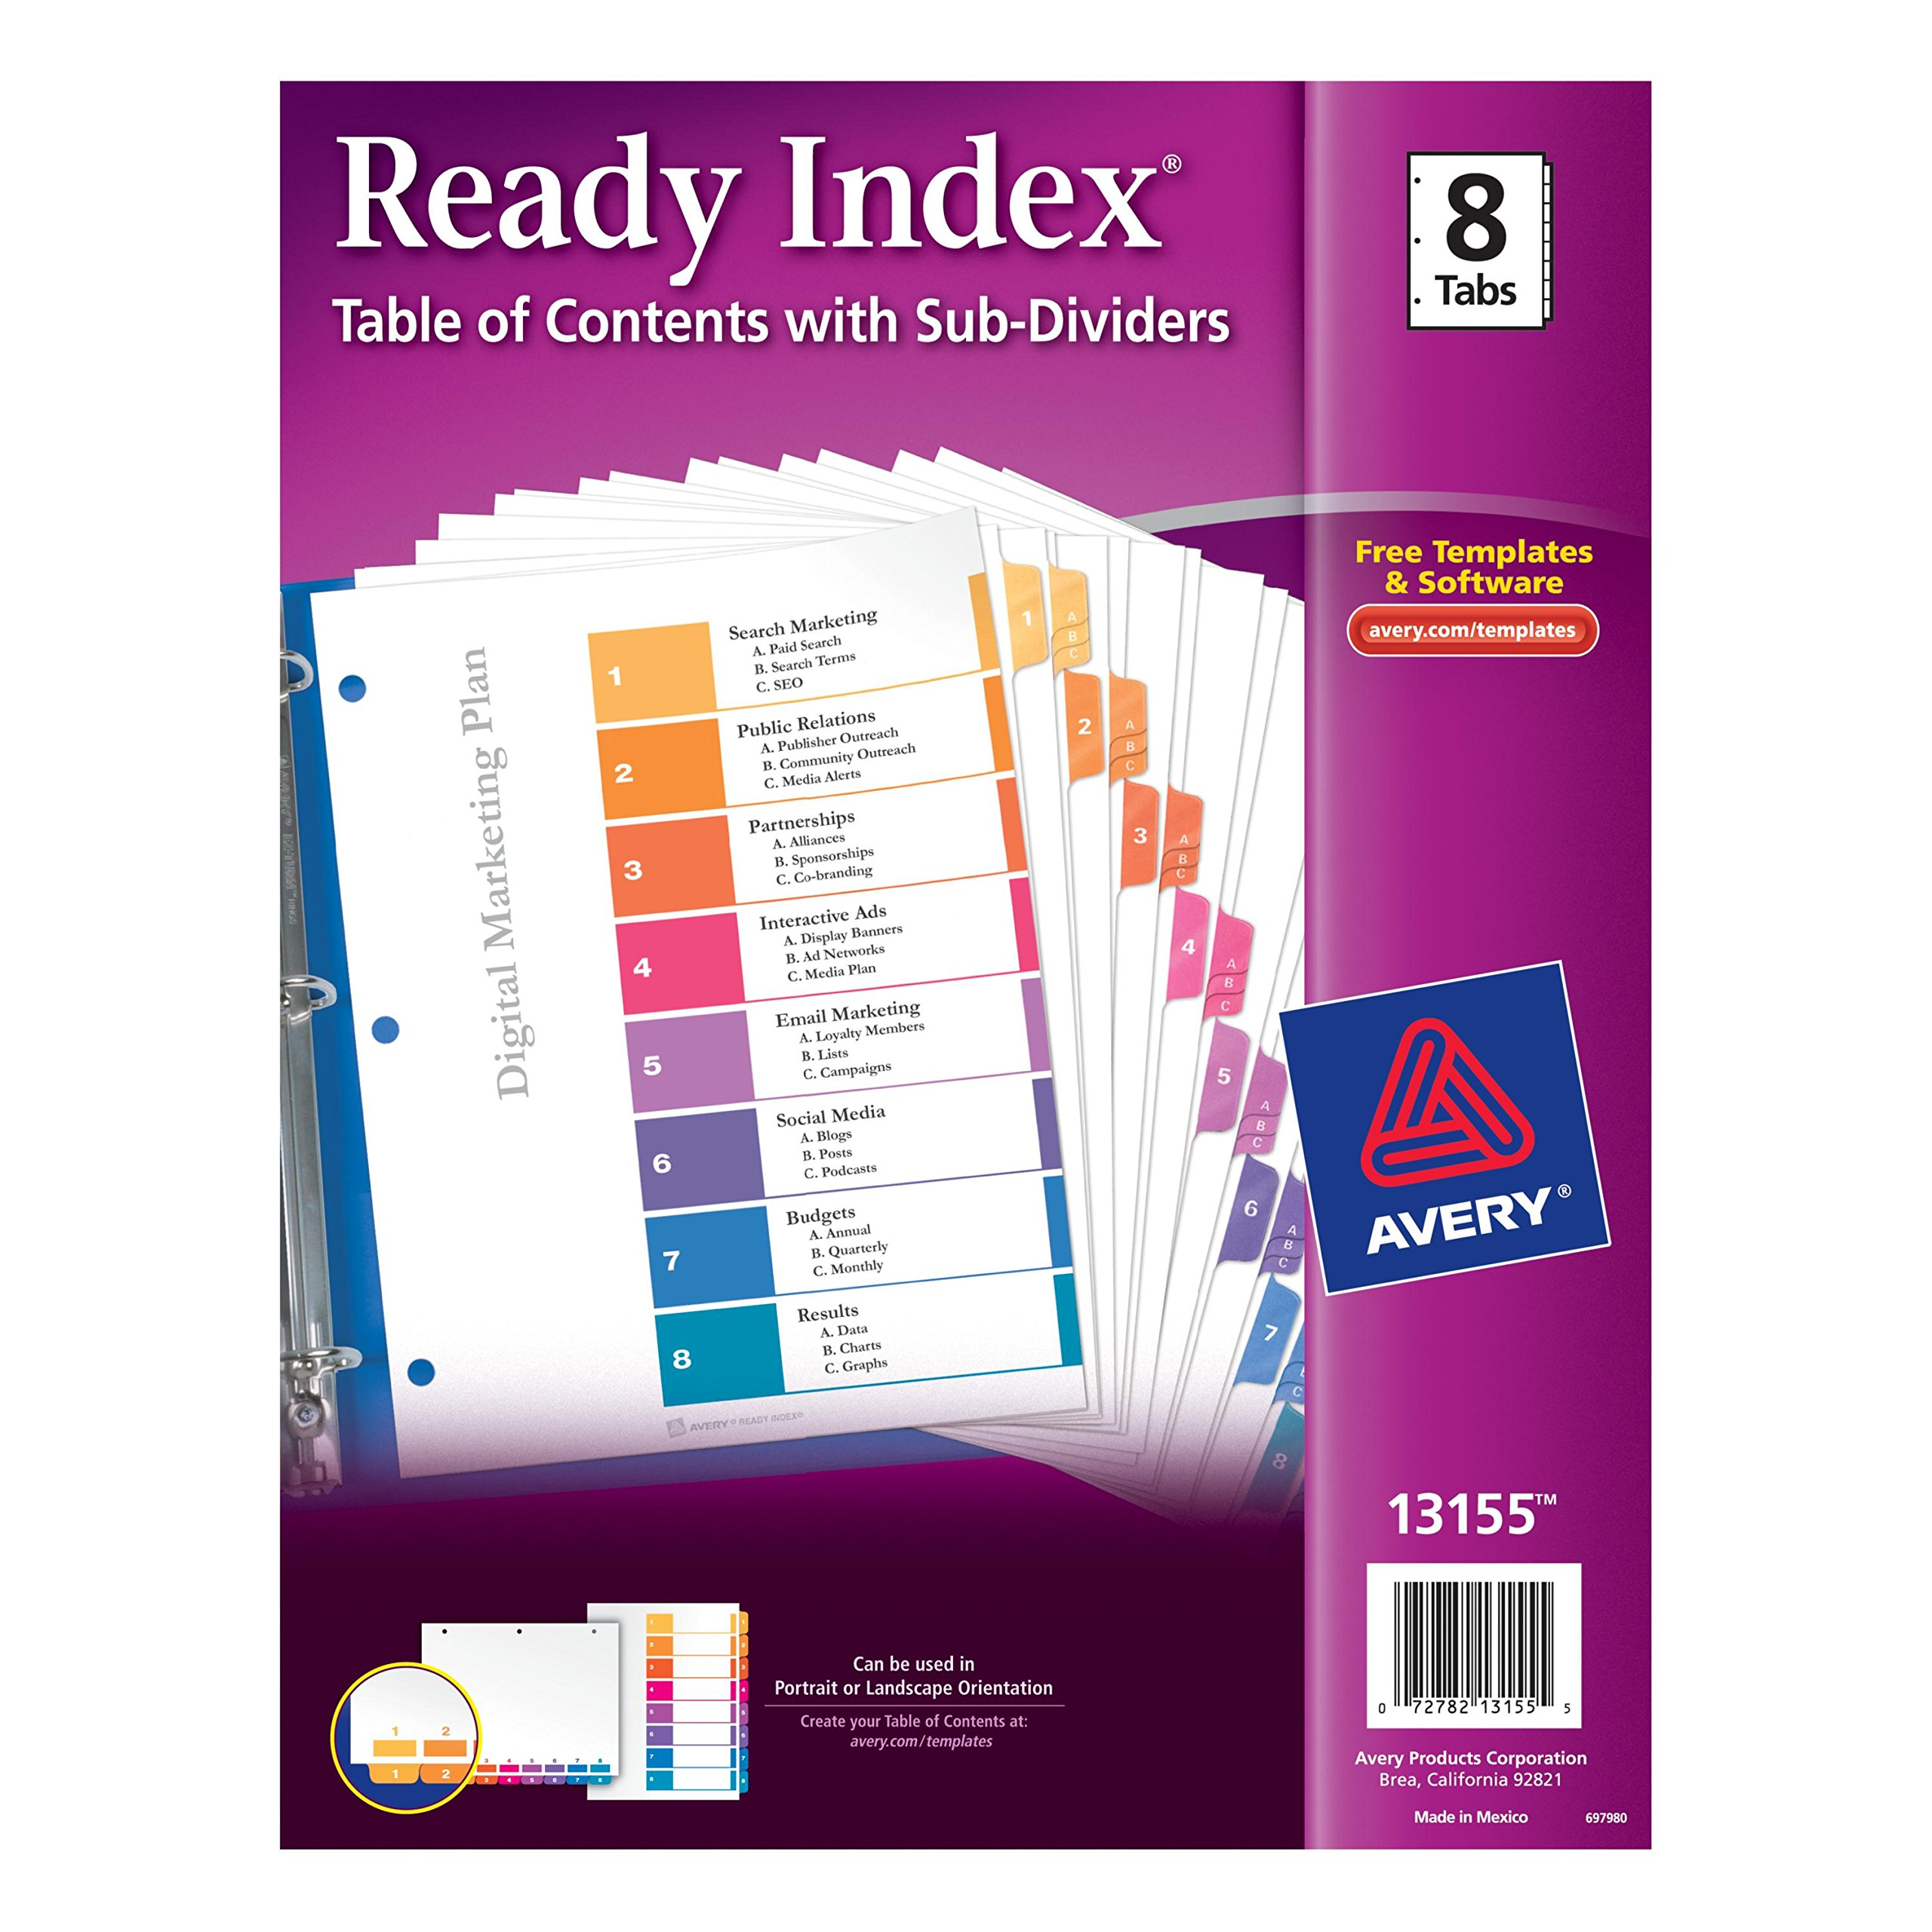 Avery Ready Index Table of Contents Dividers with Sub-Dividers, 8-Tabs per Set with A, B, and C Subsections for Each Numerical Tab (13155)